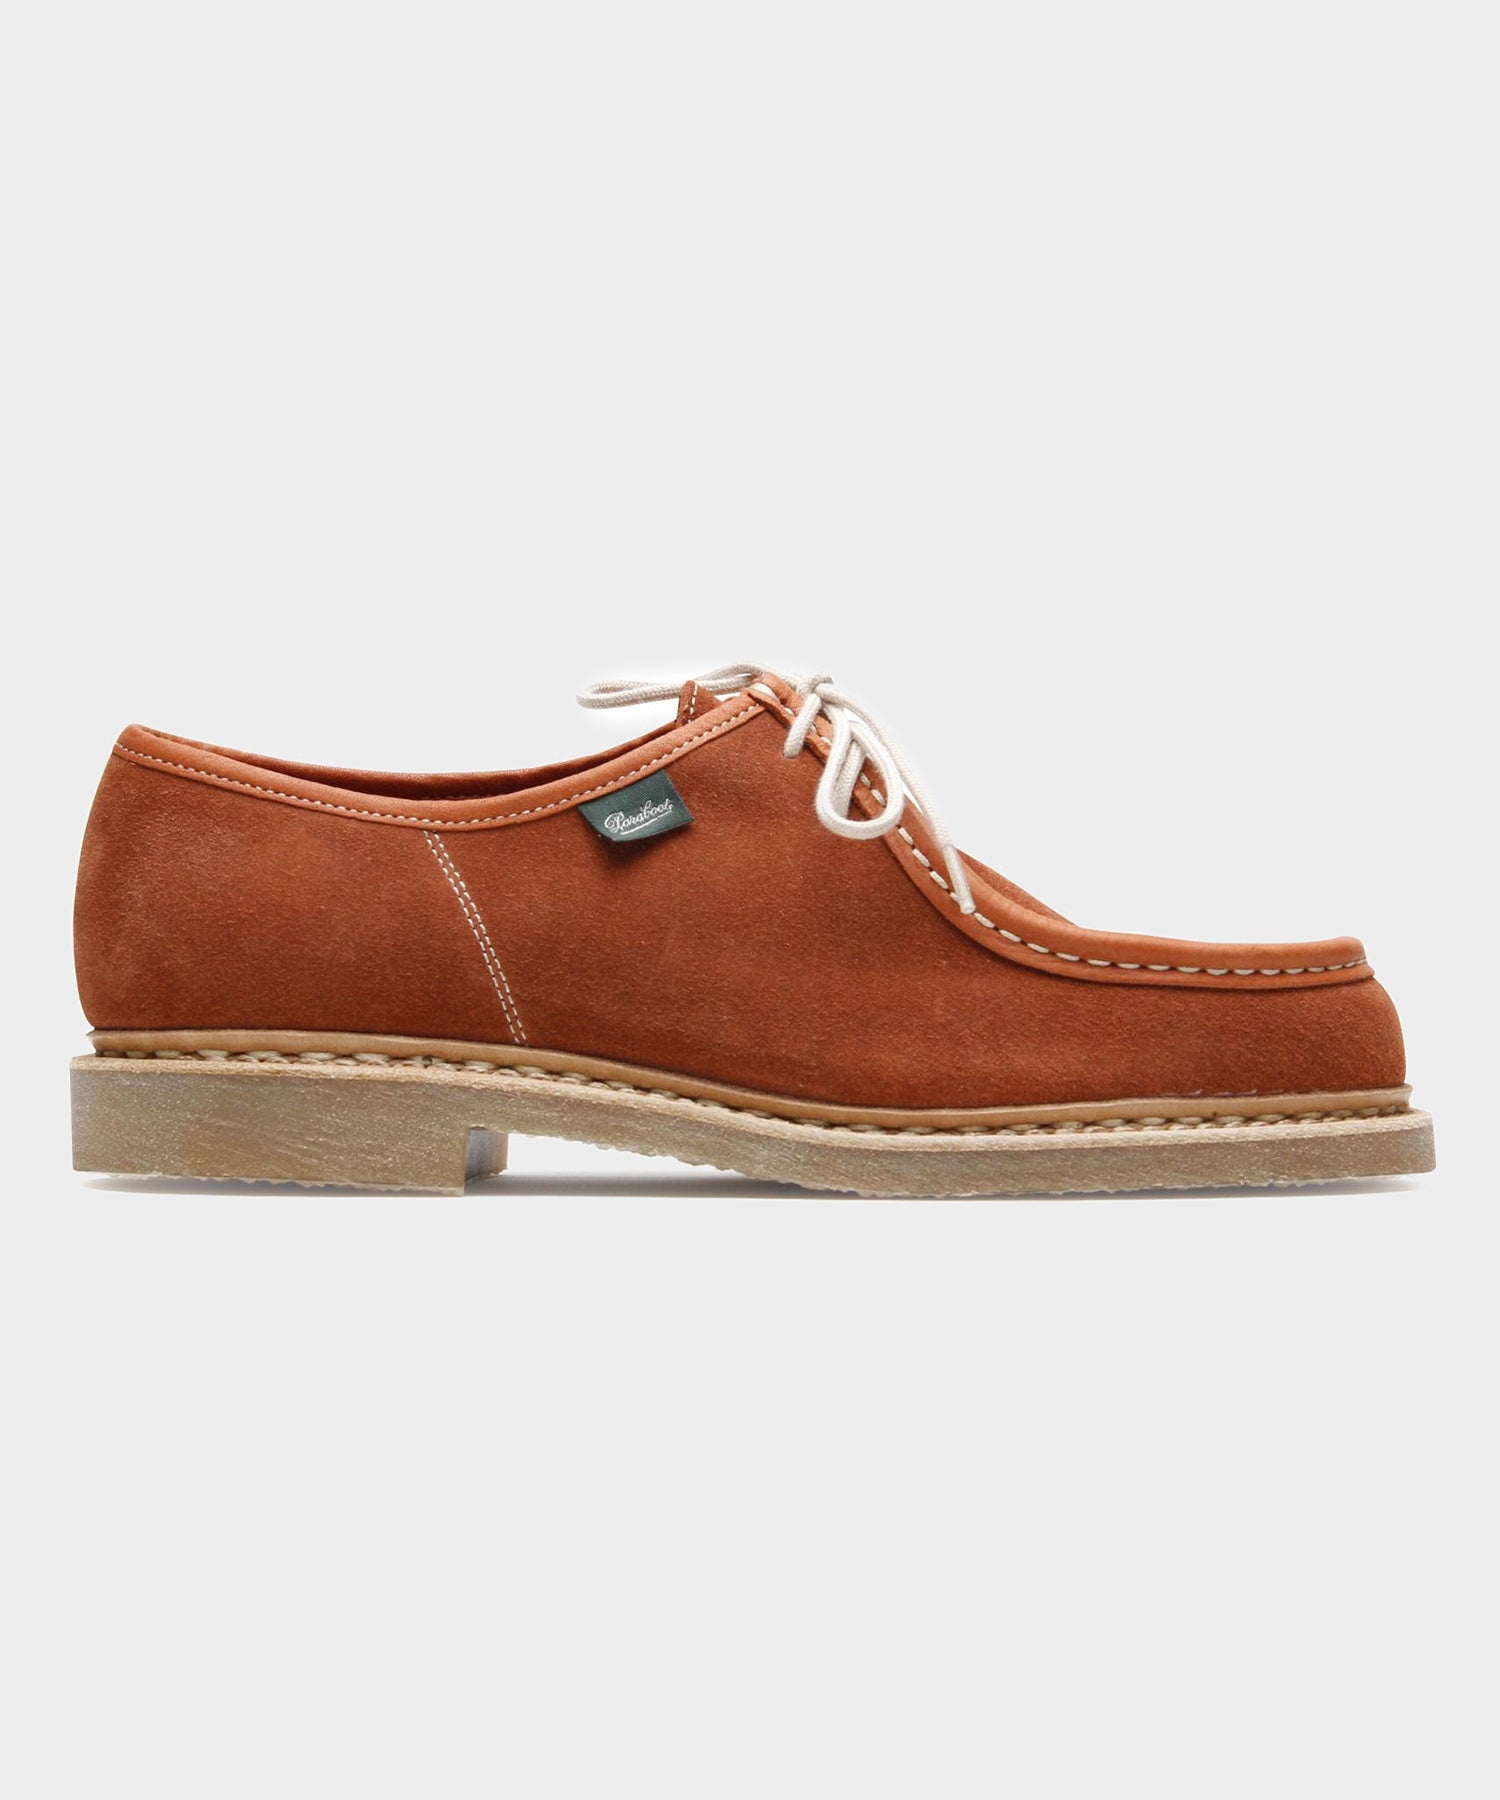 Paraboot Micka Velours in Rust